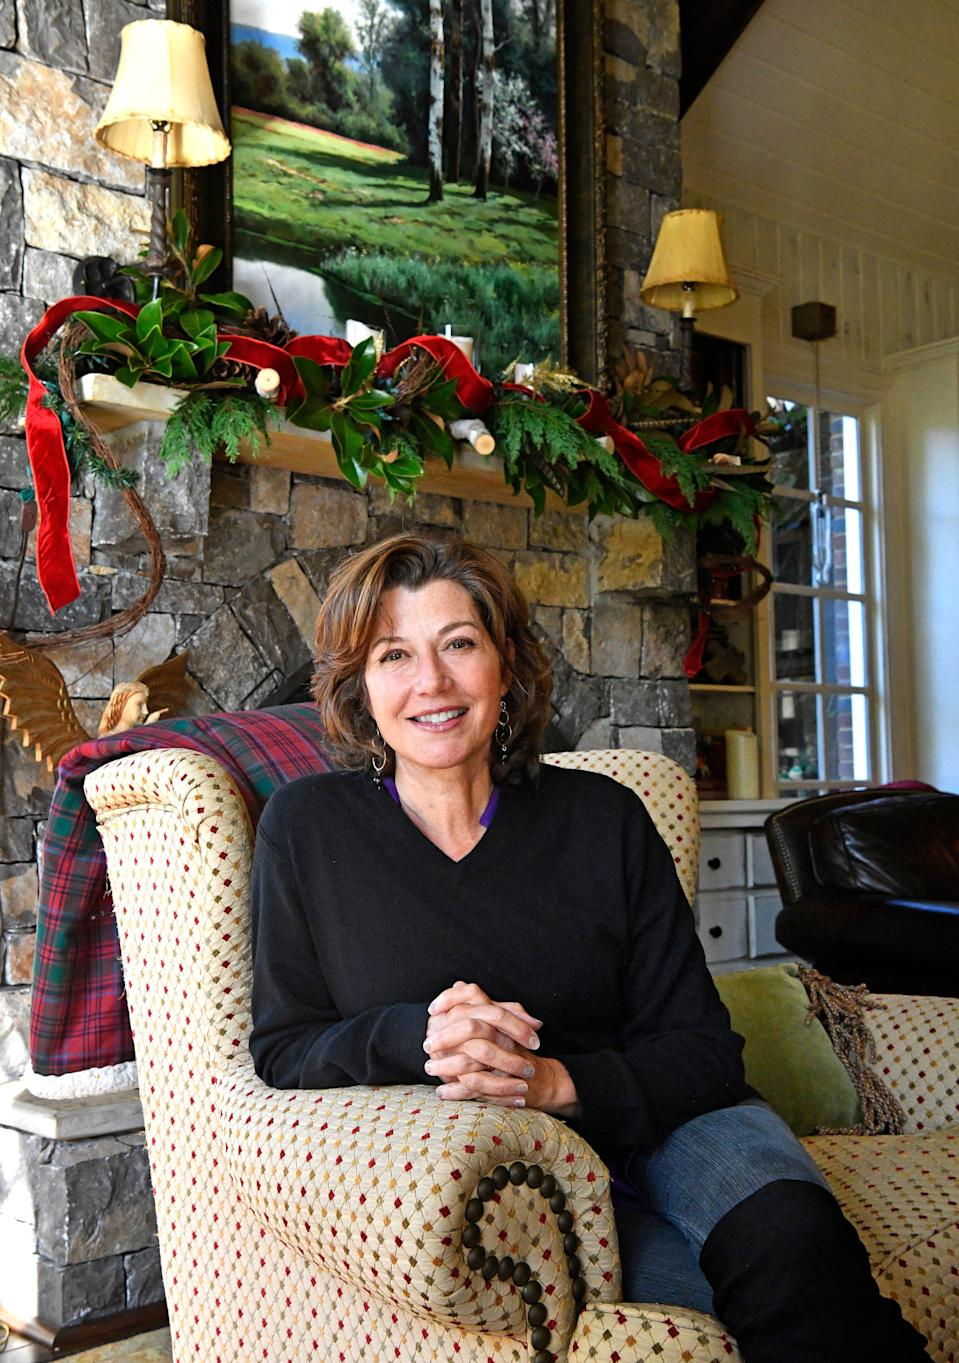 Amy Grant poses in her Belle Meade home she shares with husband Vince Gill in Nashville, Tenn. Friday, Oct. 16, 2020.